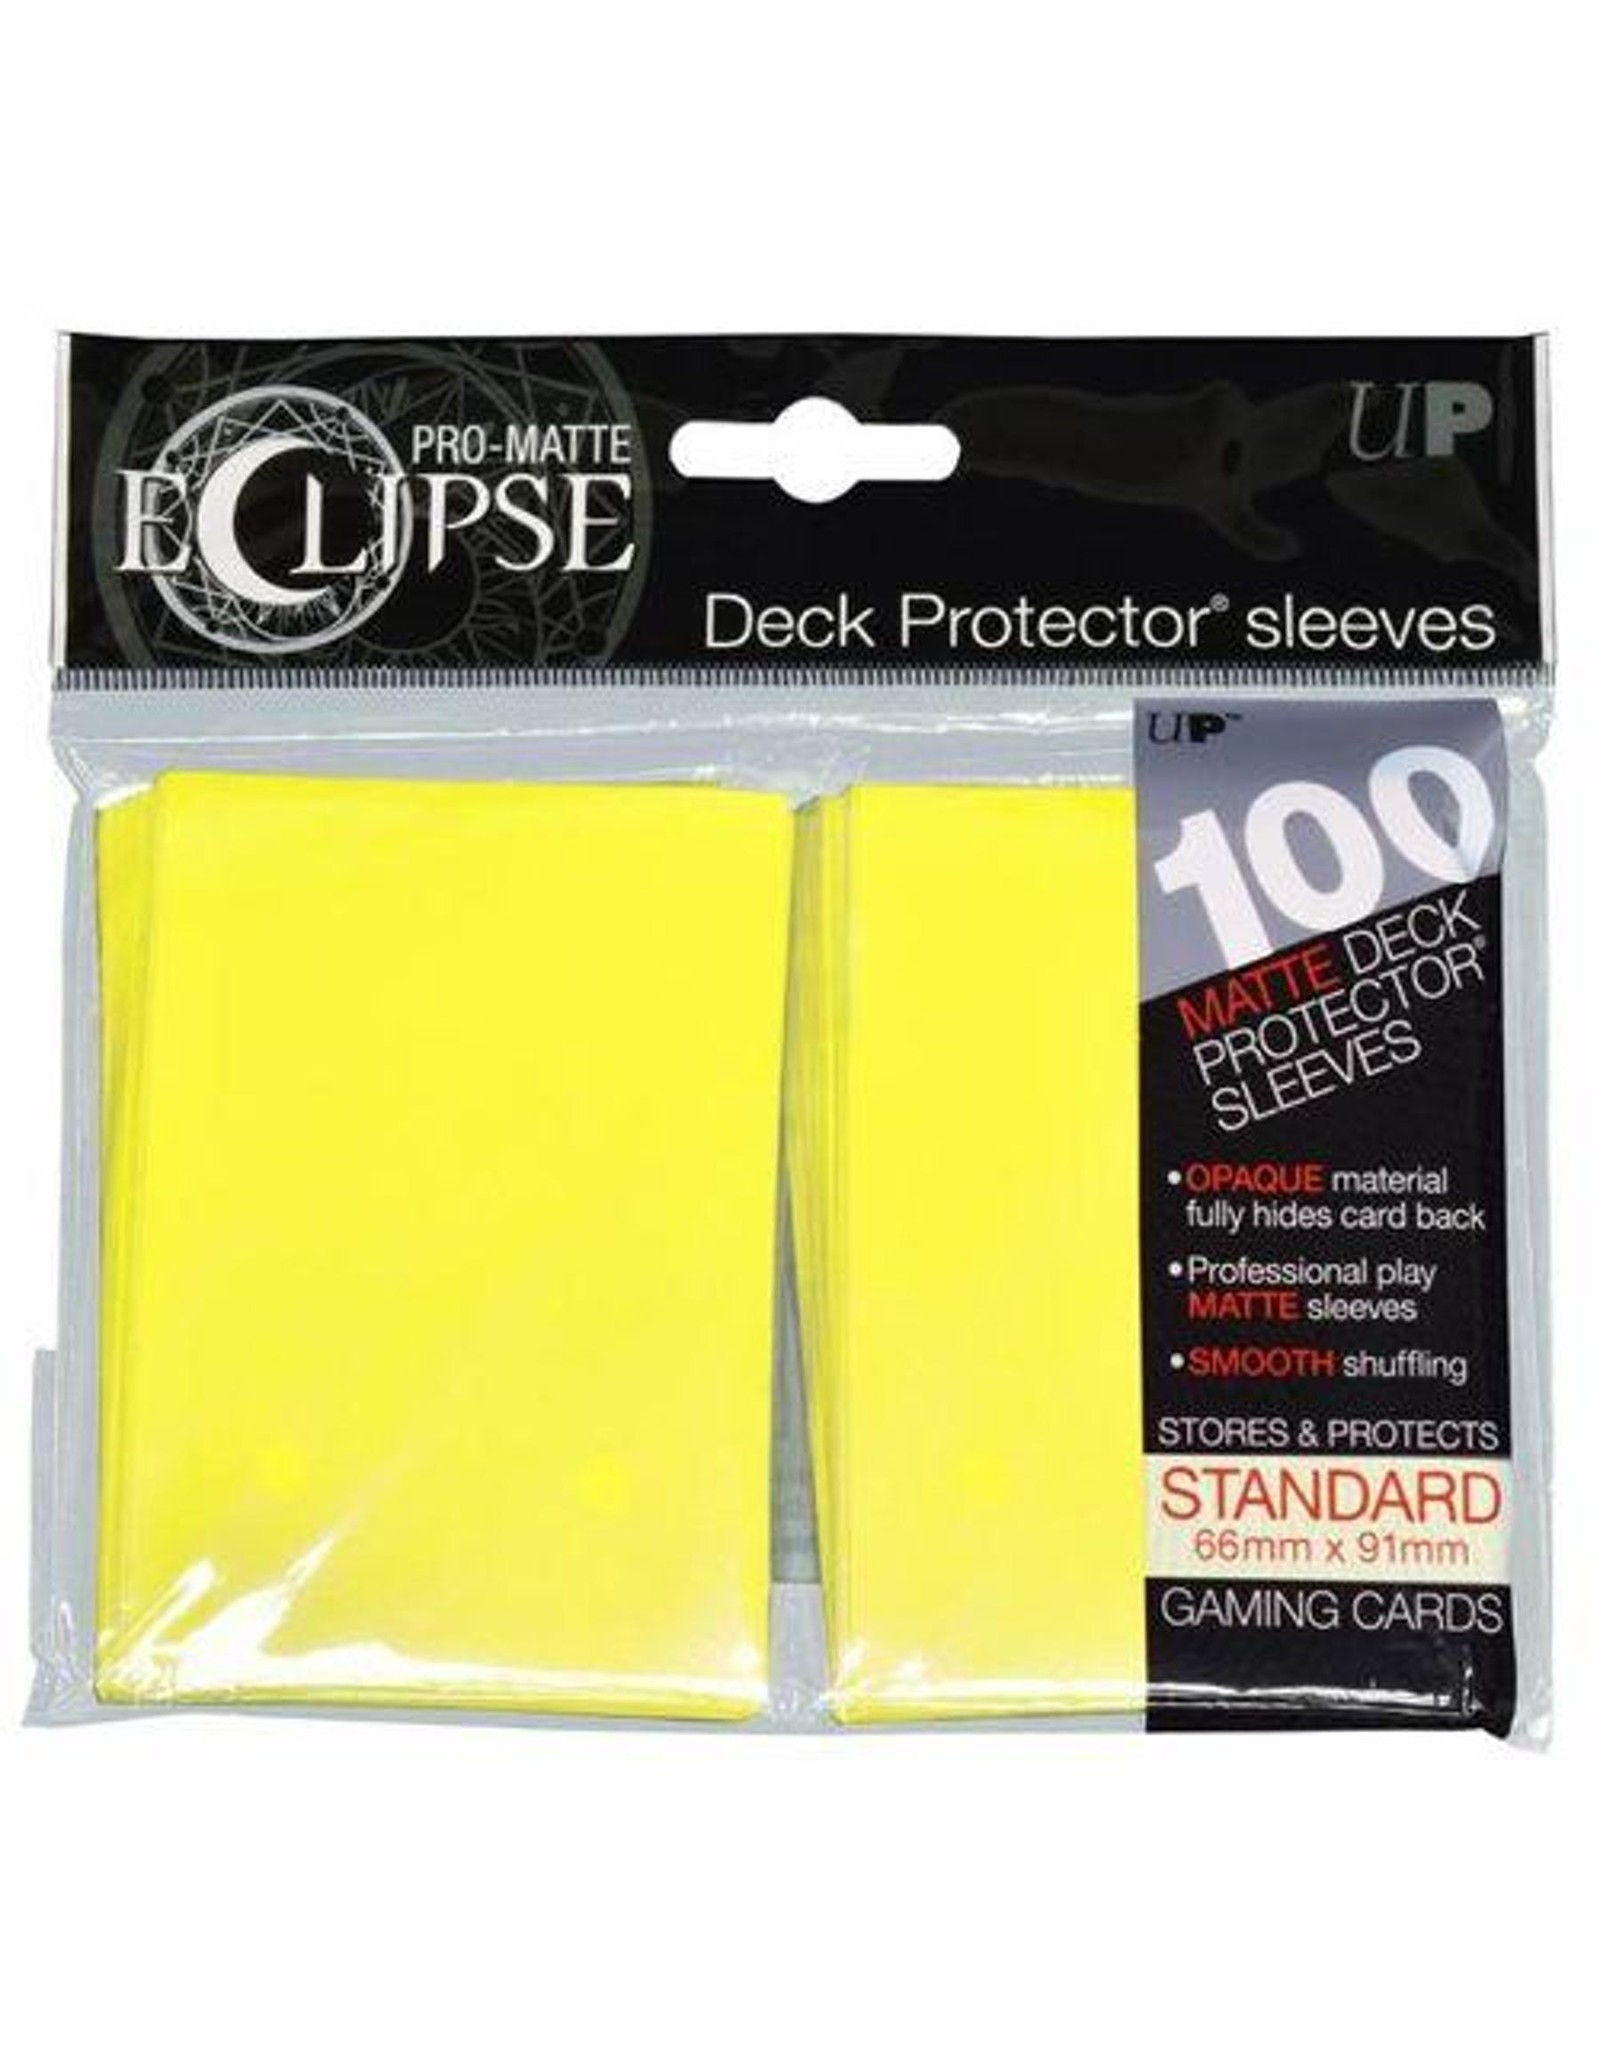 Ultra Pro Pro-Matte Eclipse 2.0 Standard Deck Protector Sleeves: Lemon Yellow (100)